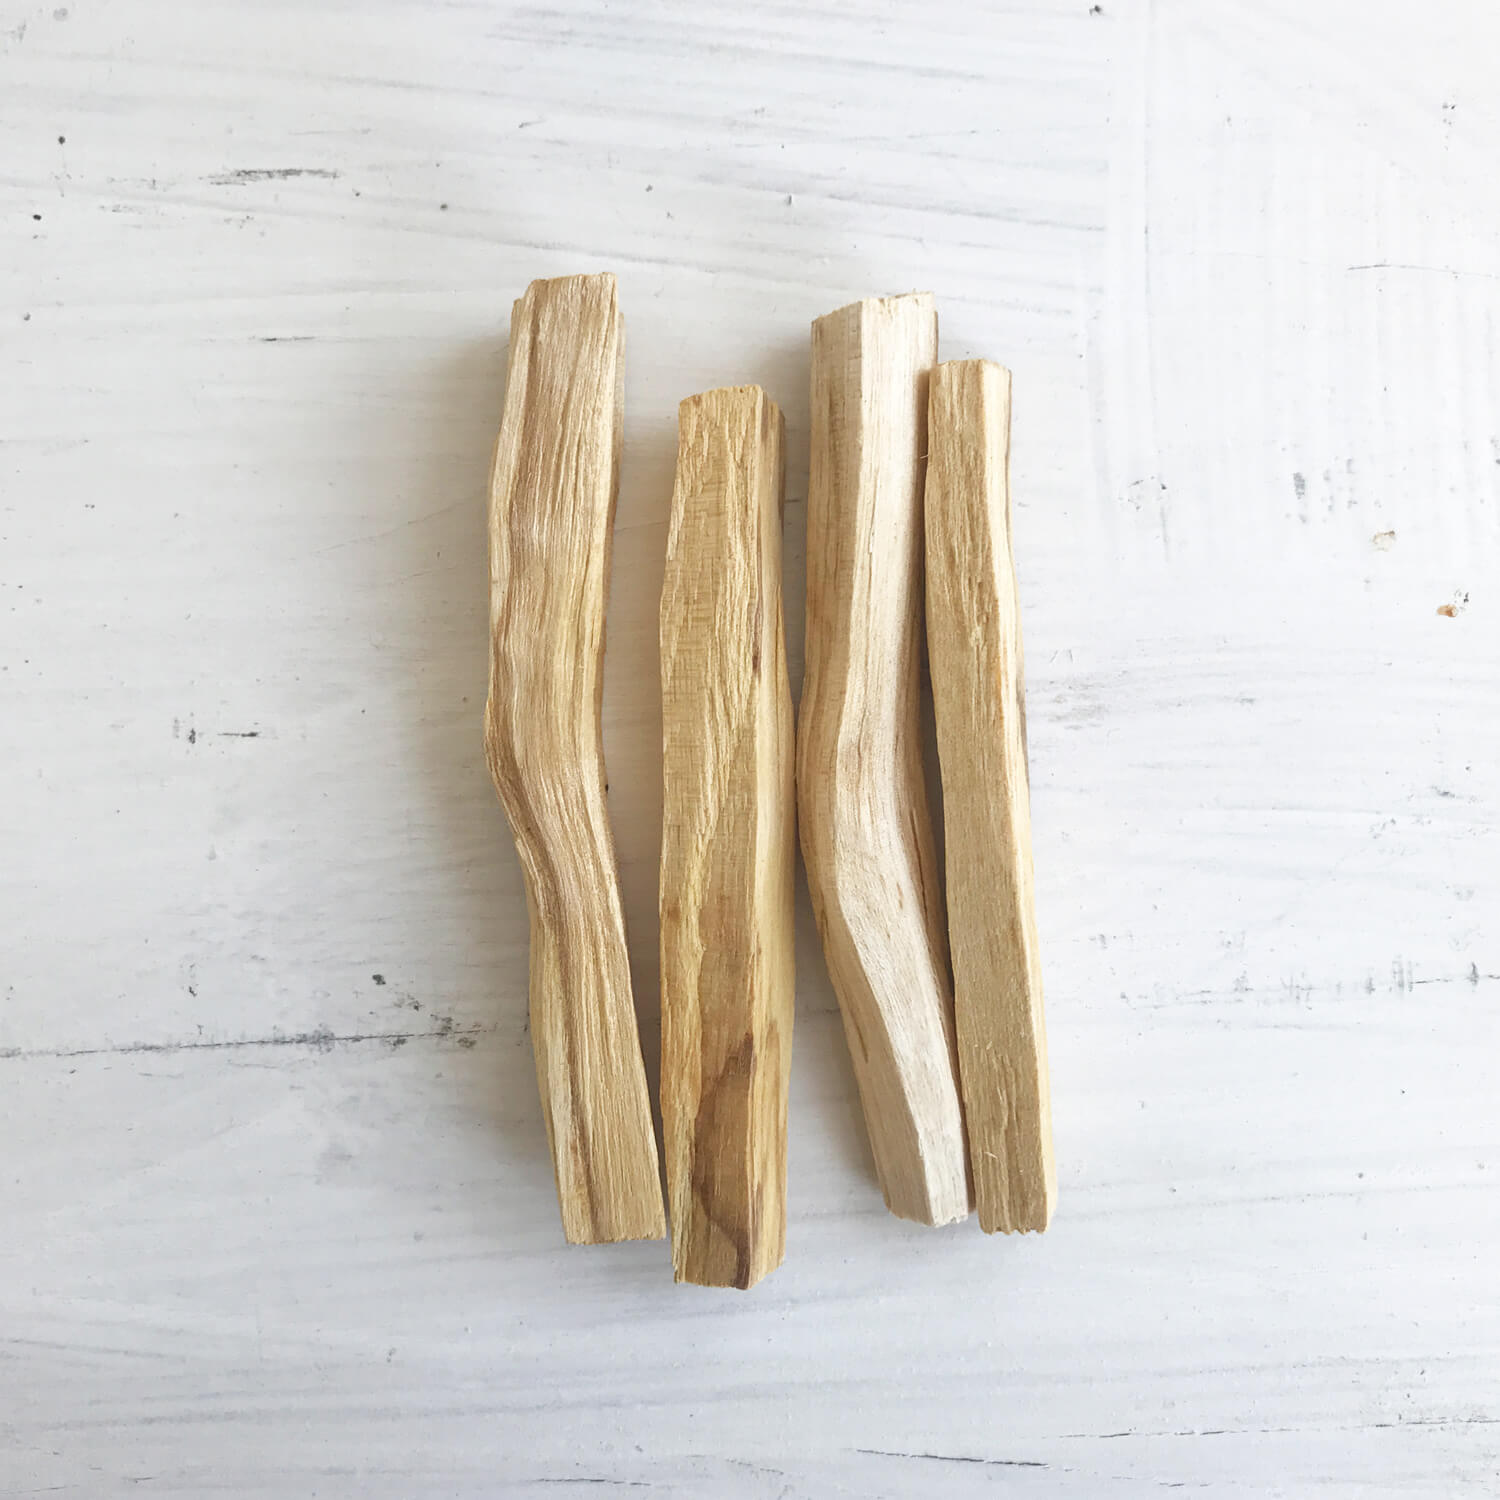 "Palo Santo  is a sacred tree used by the Incas to purify and cleanse the spirit from negative energies. Palo Santo, ""Holy Wood"", grows on the coast of South America. The incense is used to energize and cleanse rooms and objects. It aids meditation and peaceful thoughts."